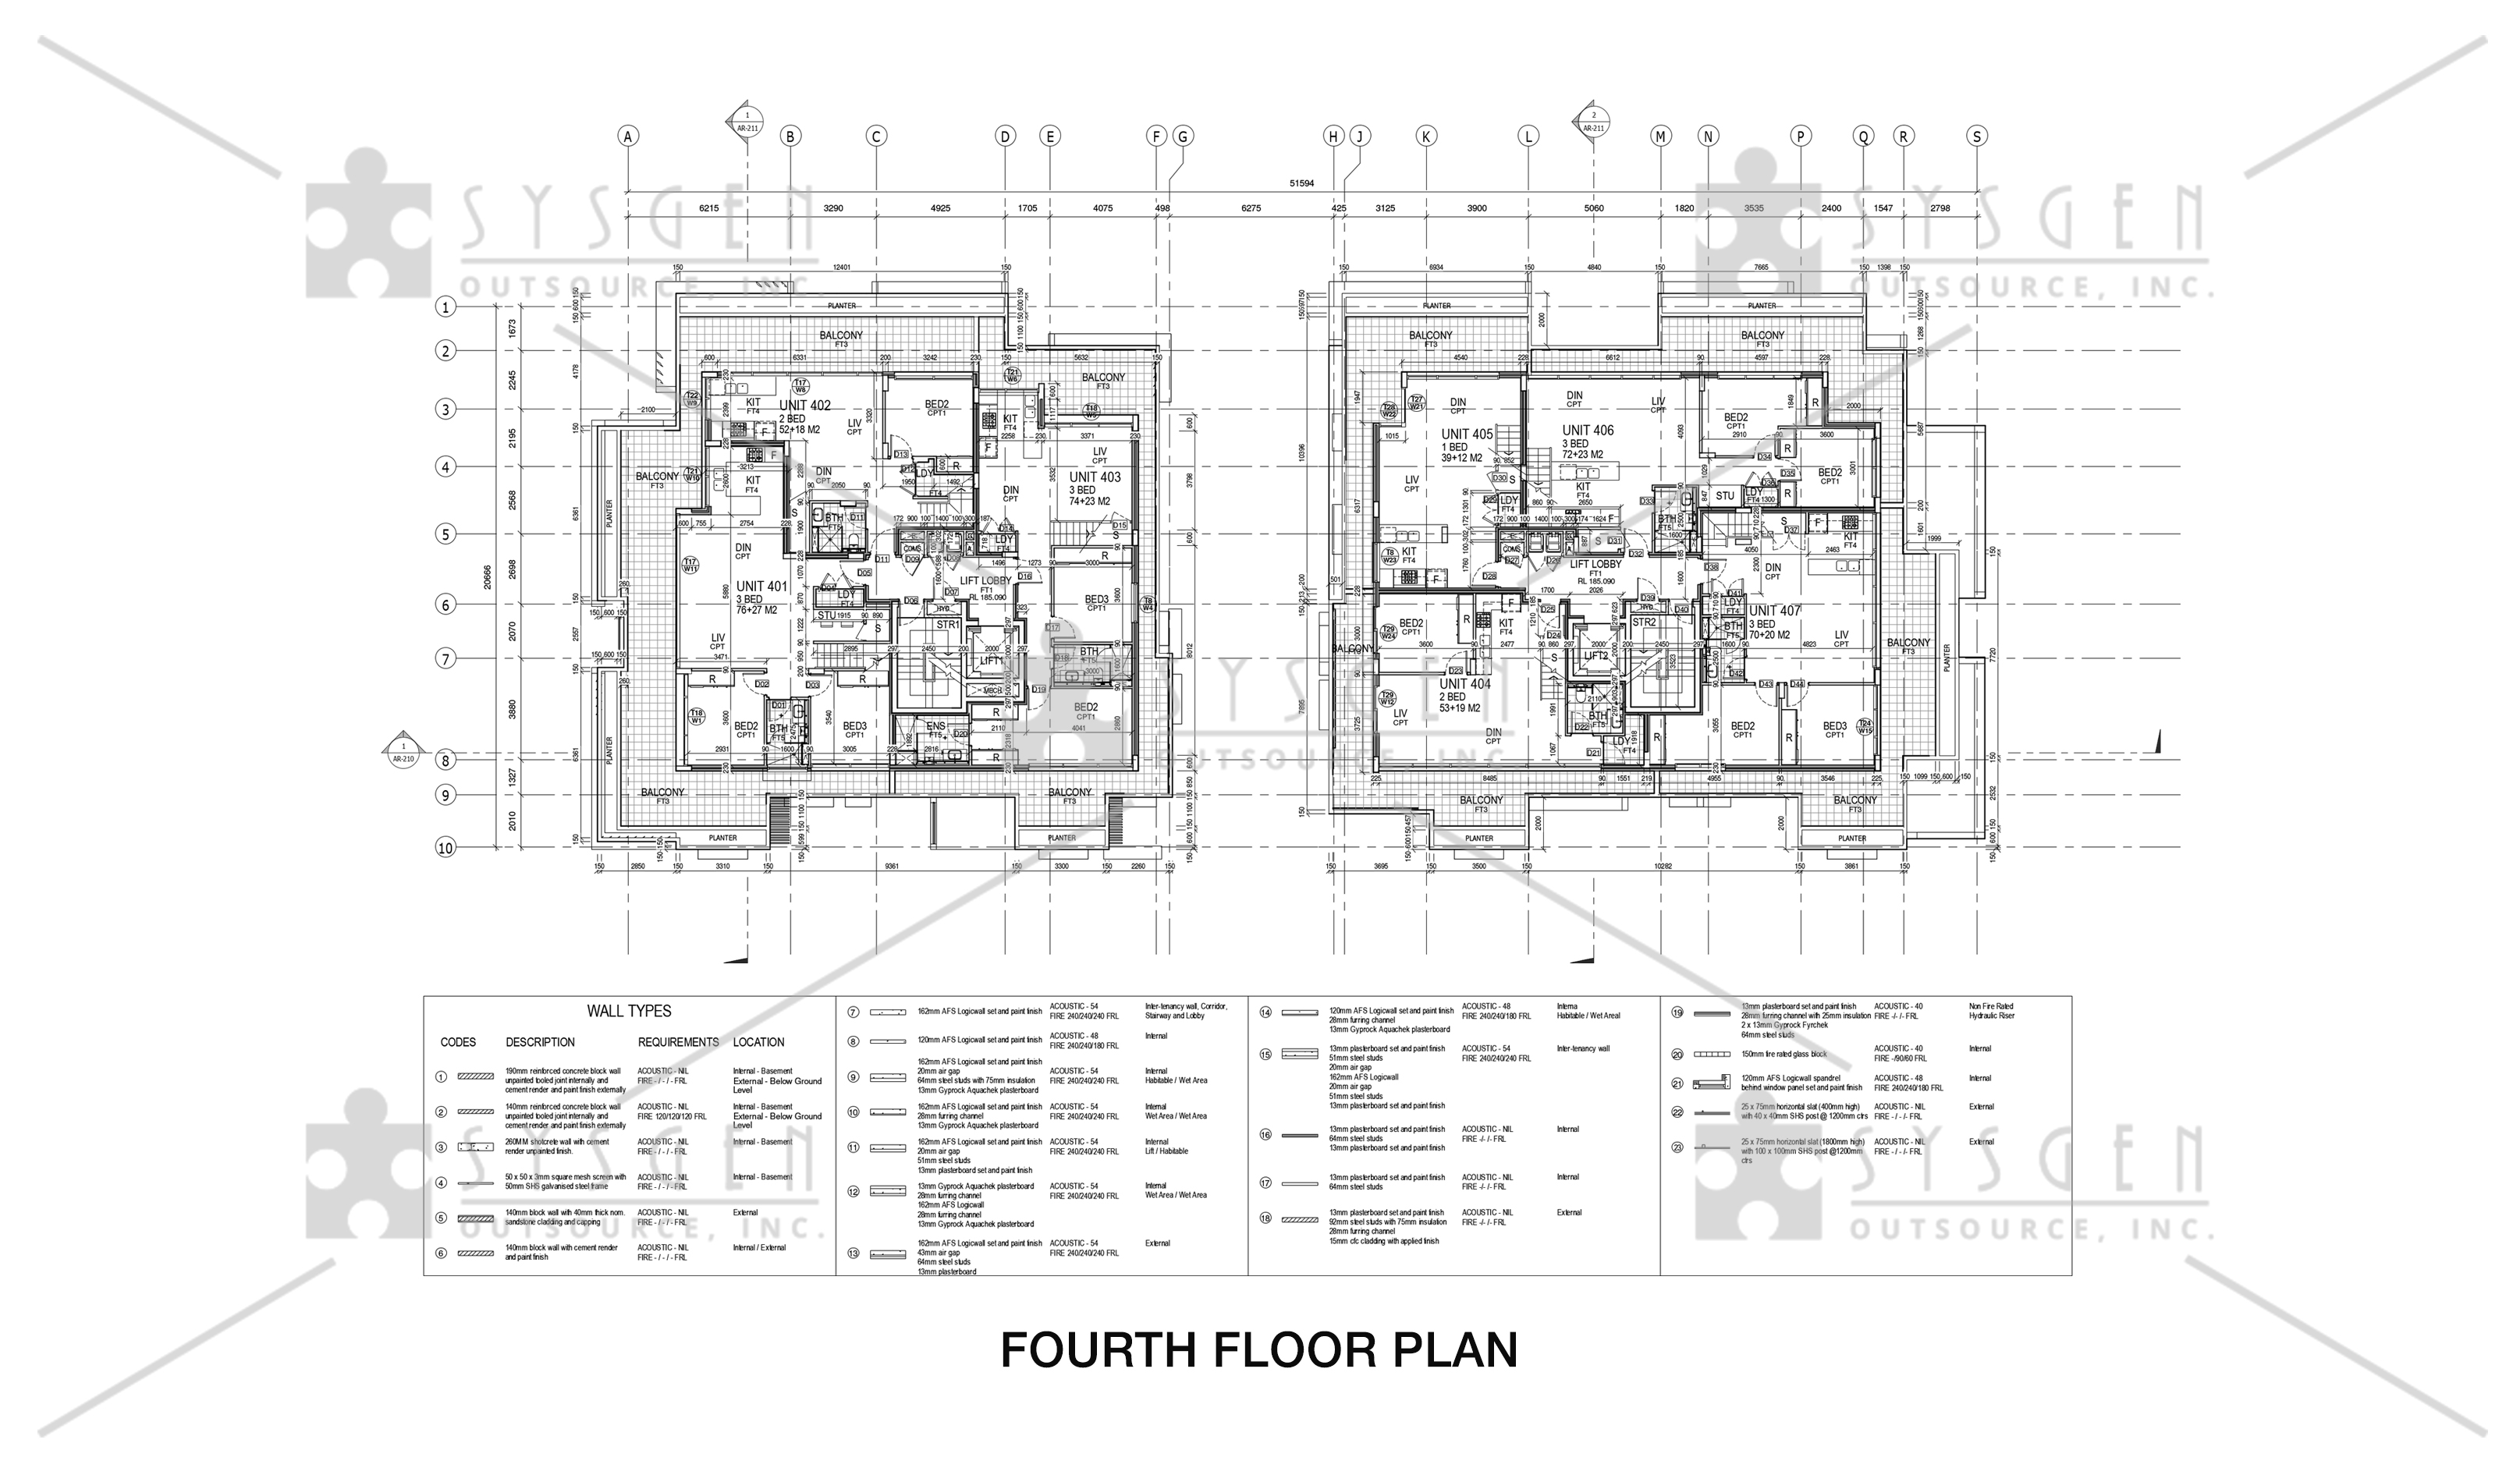 sysgen-outsource-cad-outsourcing-services-cad-conversion-revit-4-storey-residential8